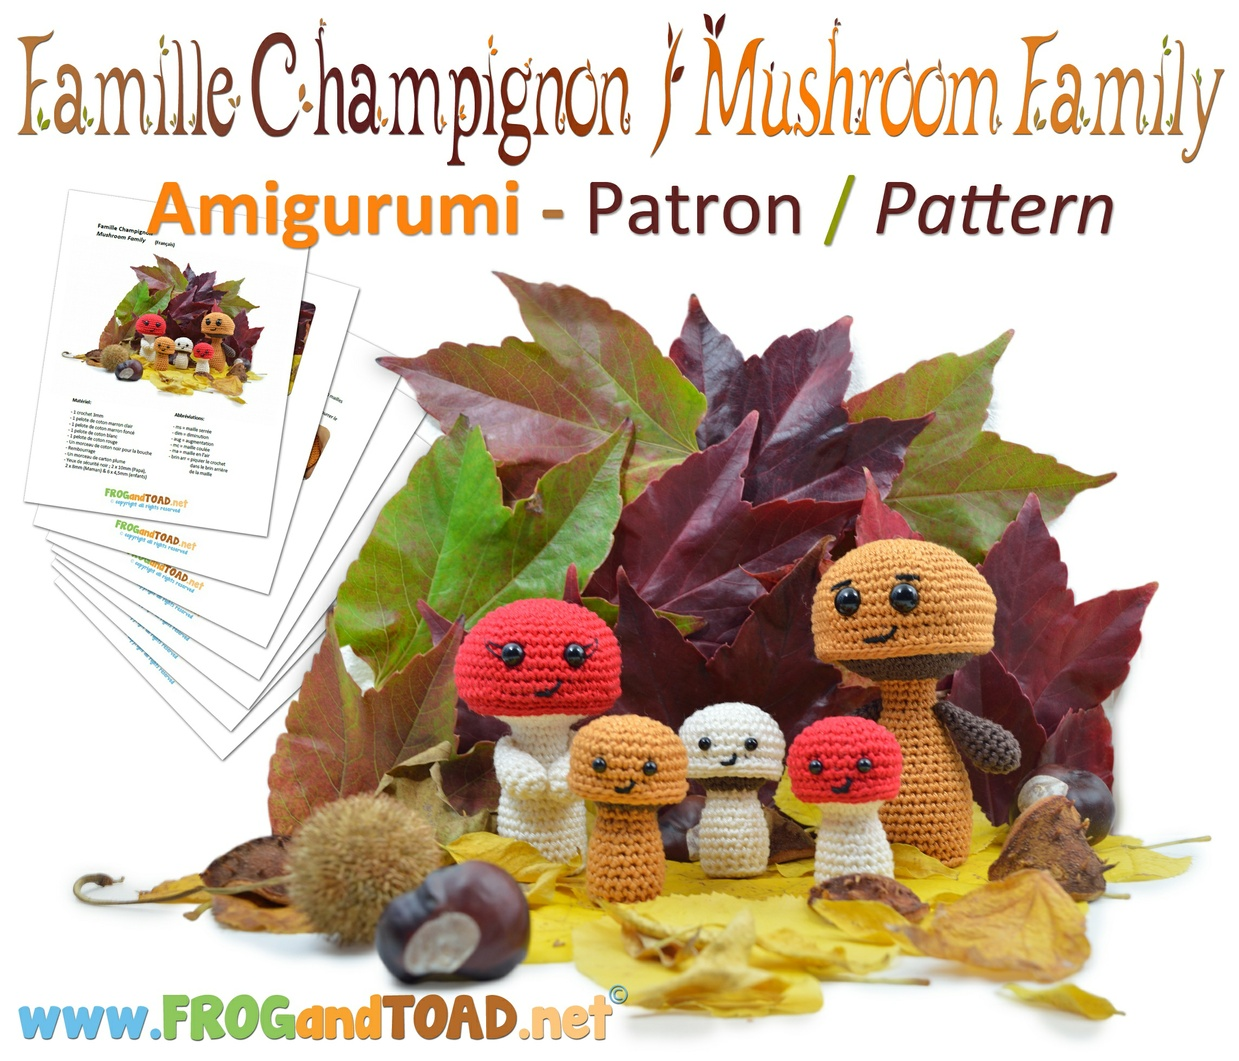 Famille Champignon - Mushroom Family - FROGandTOAD Créations ©